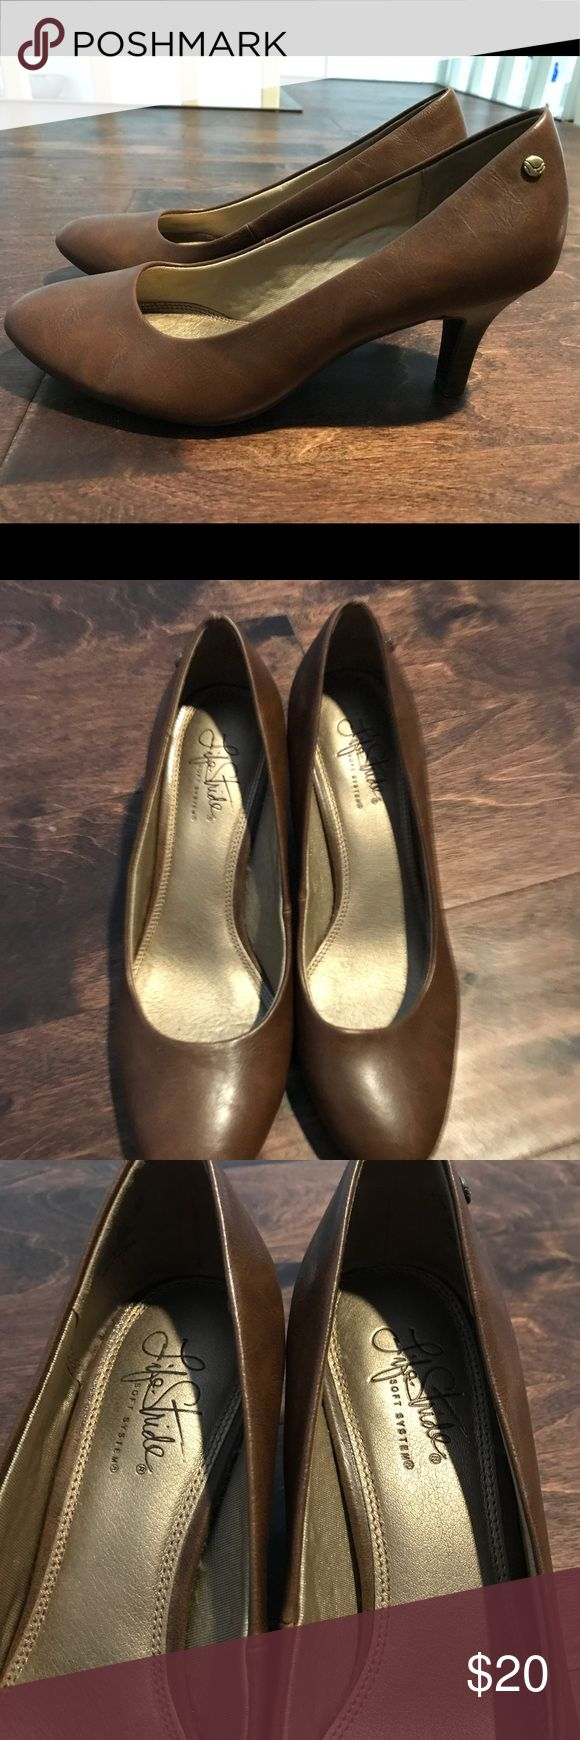 Professional Brown Heels so comfortable! very thick pad on the bottom so they're perfect for a long day at the office or walking around while still being stylish. worn once Naturalizer Shoes Heels